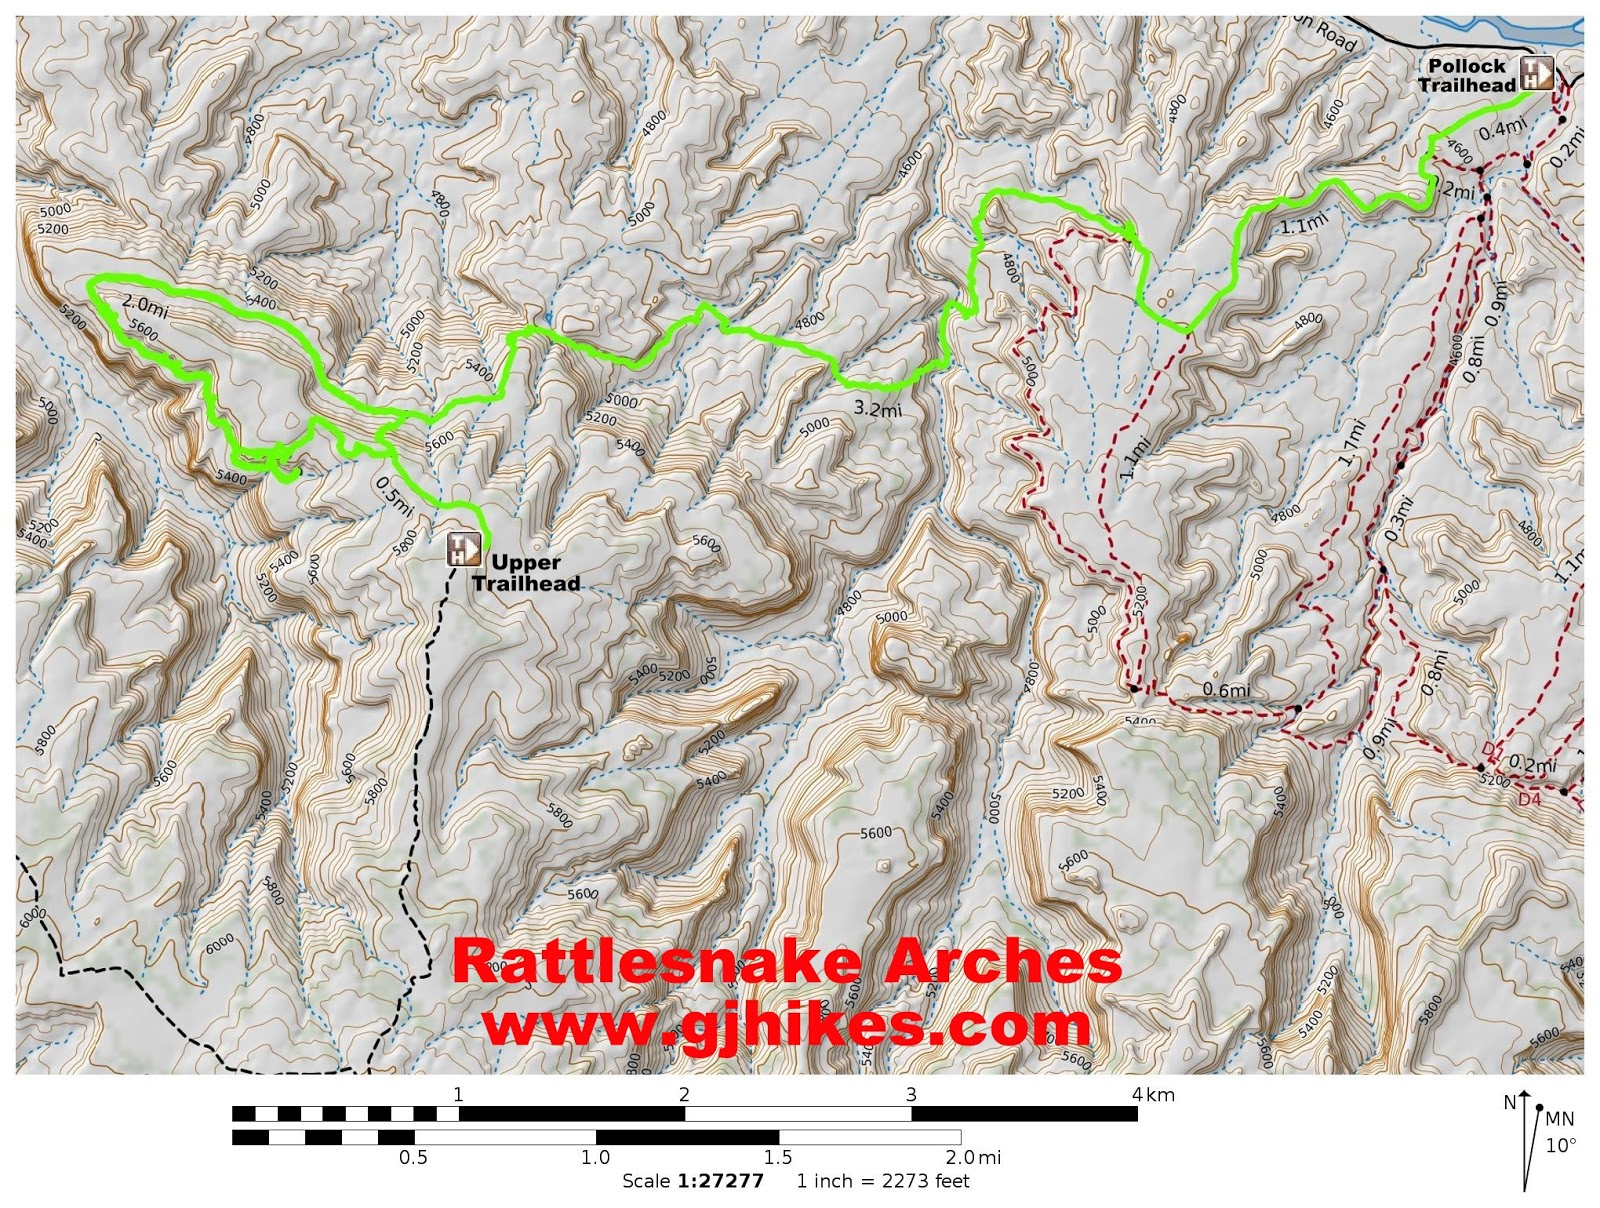 Rattlesnakes In Colorado Map.Gjhikes Com Rattlesnake Arches